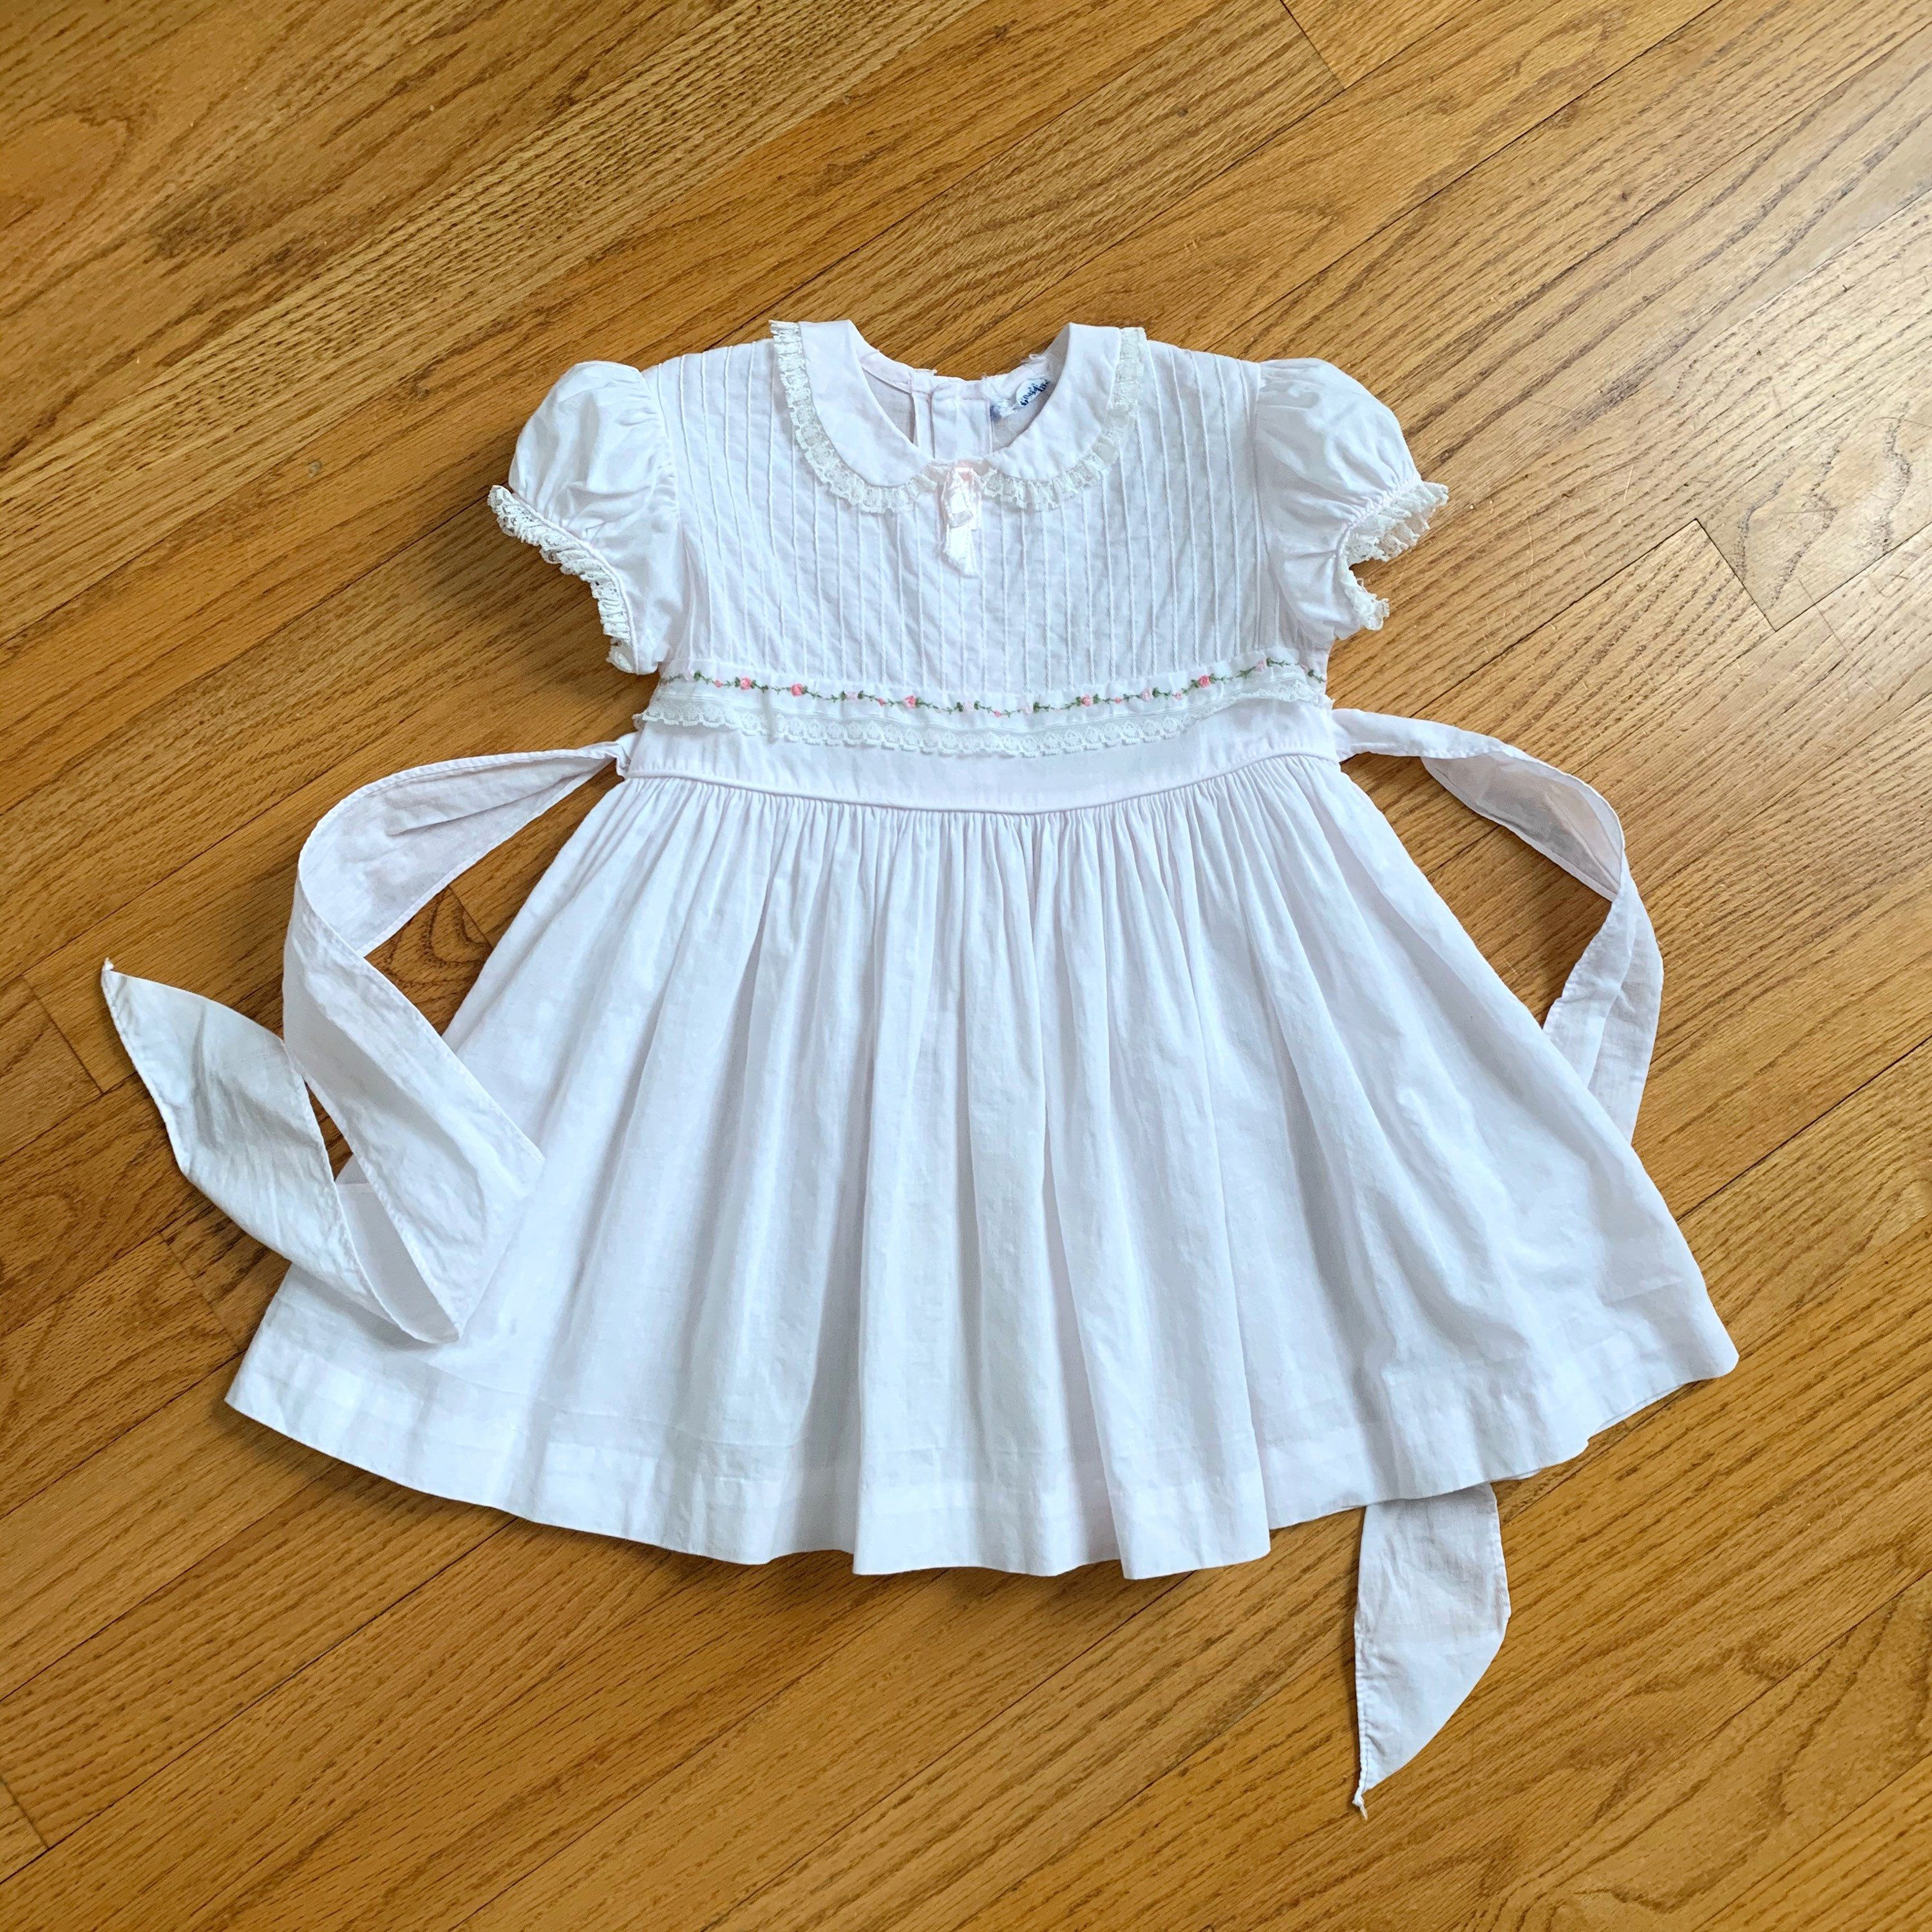 Pin on vintage kids fashions & accessories